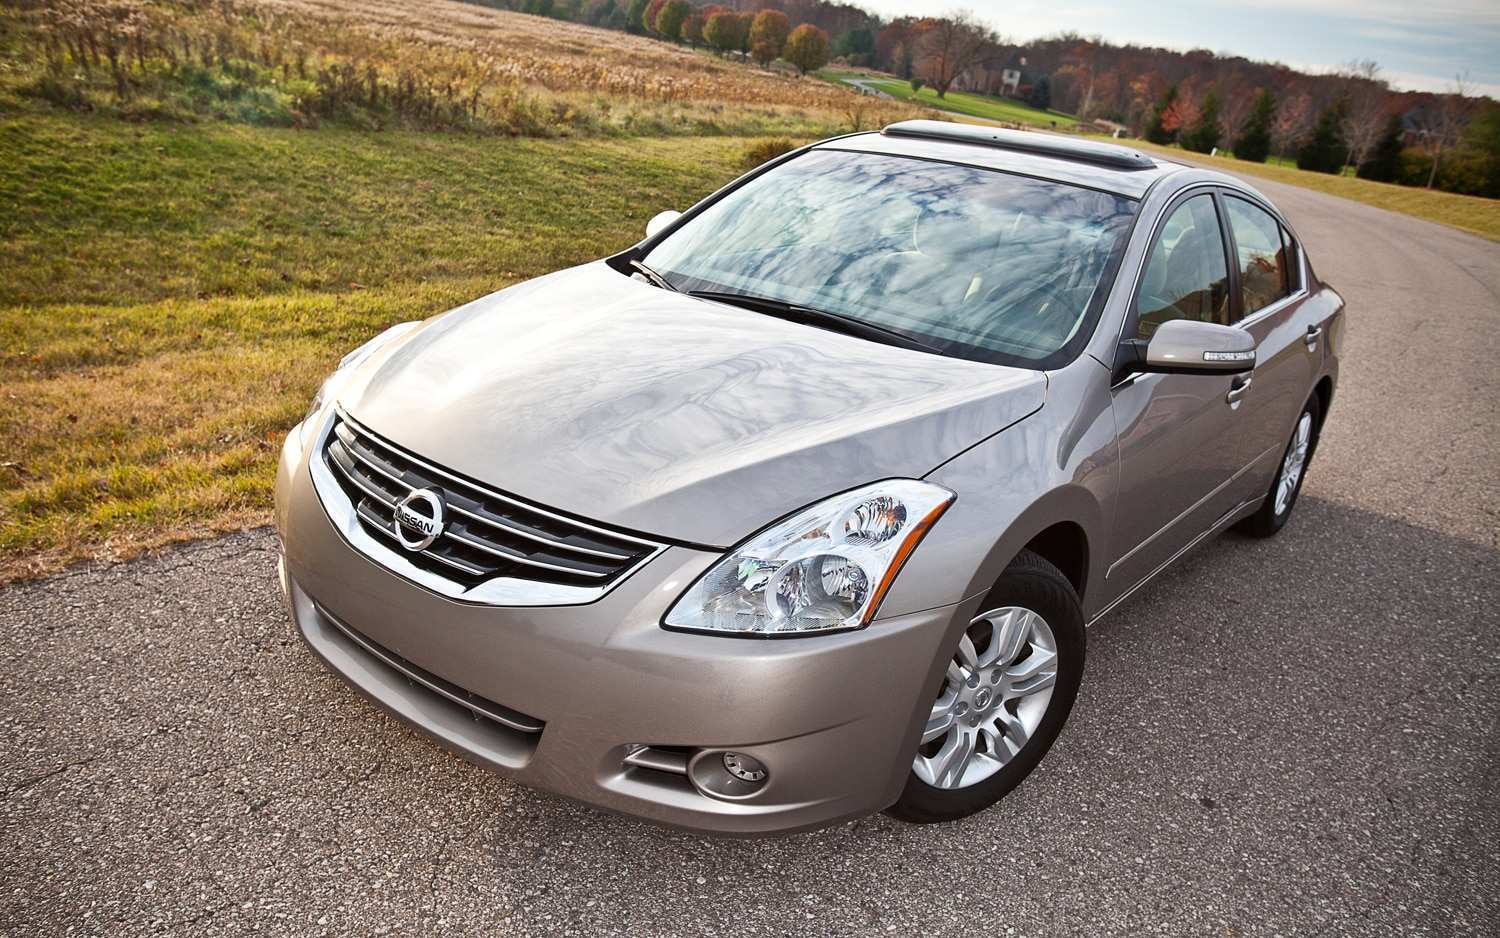 20 Best Nissan Altima 2 5 S Model